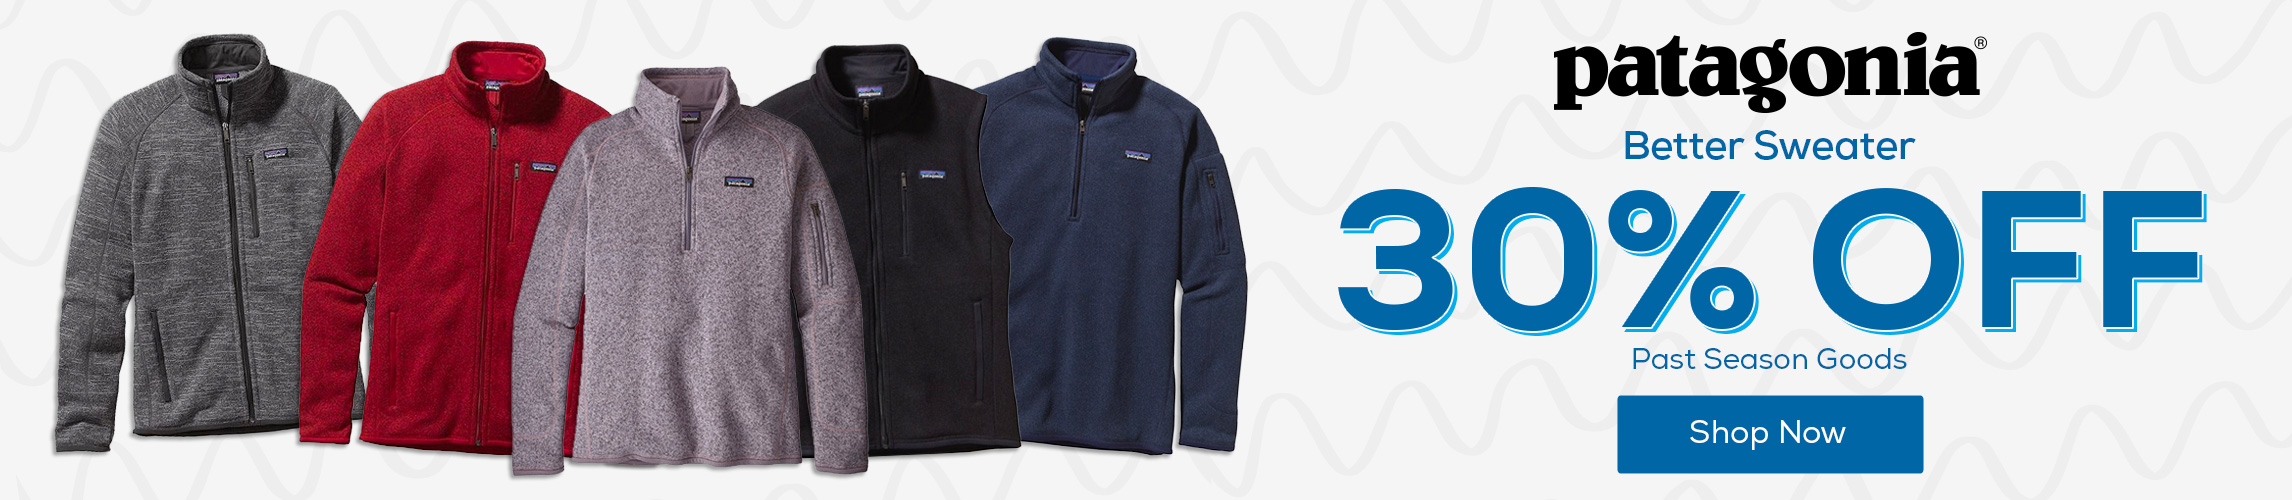 Patagonia Better Sweater 30% Off Past Season Goods